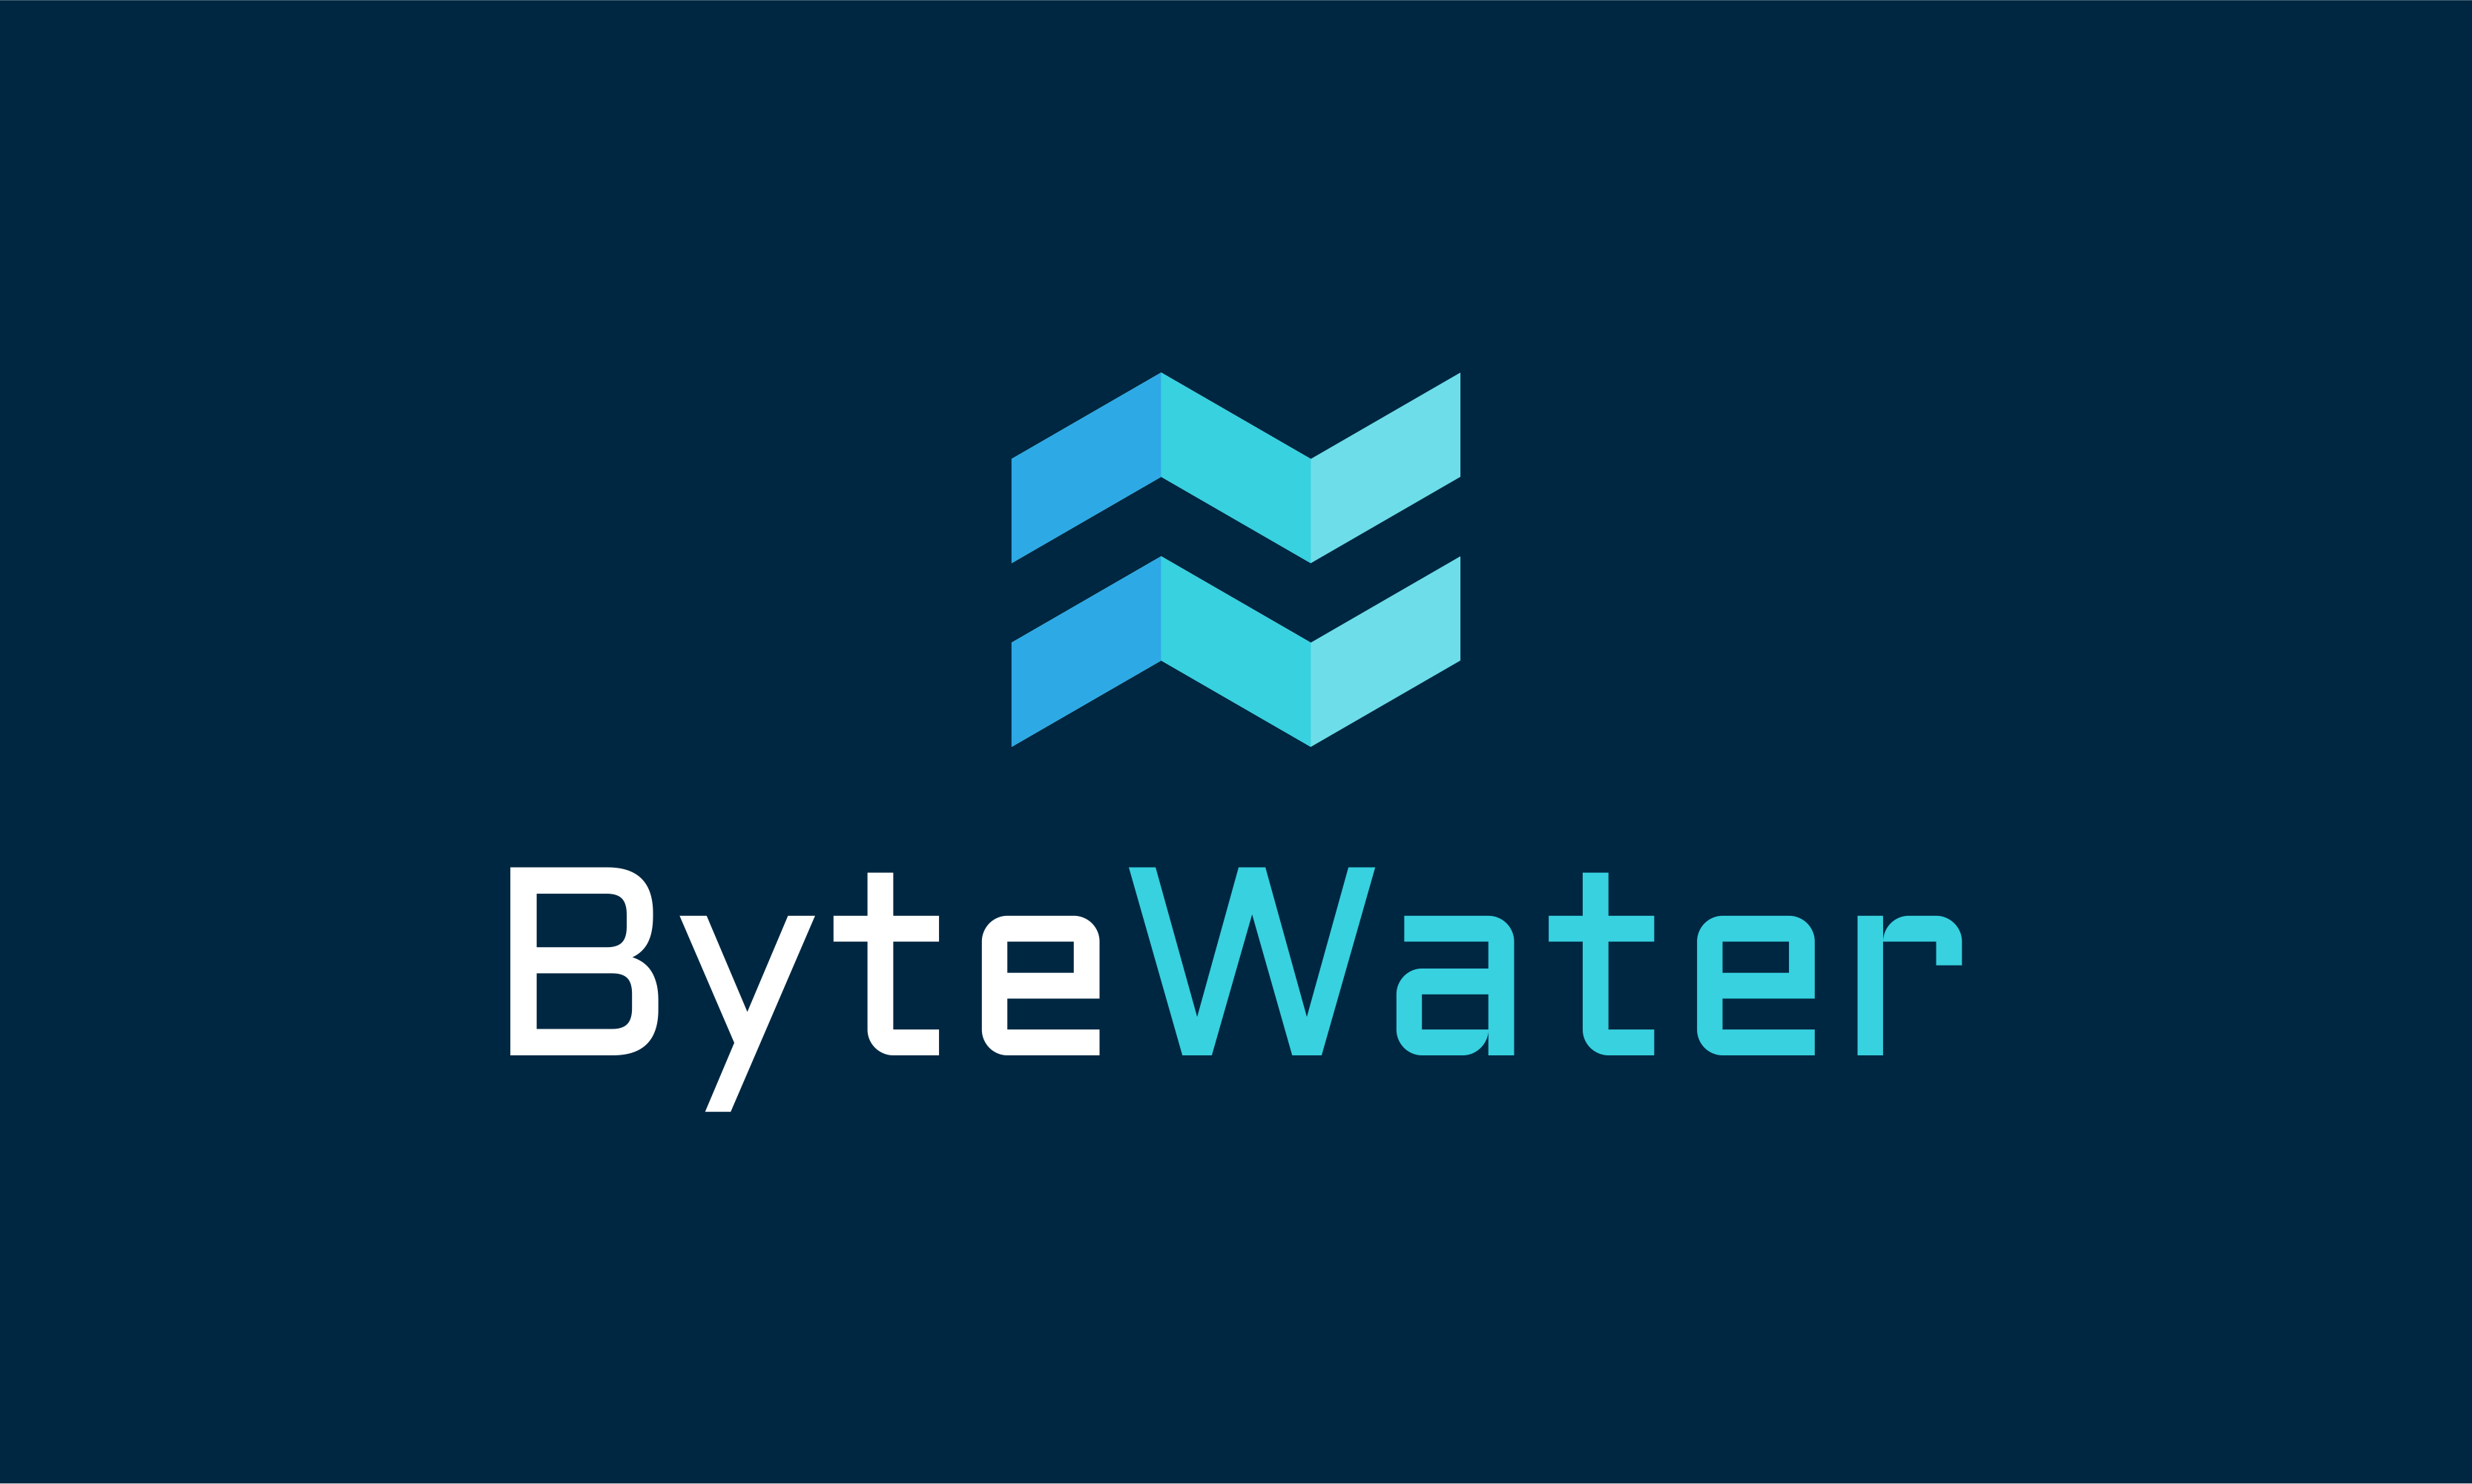 Bytewater - Possible company name for sale